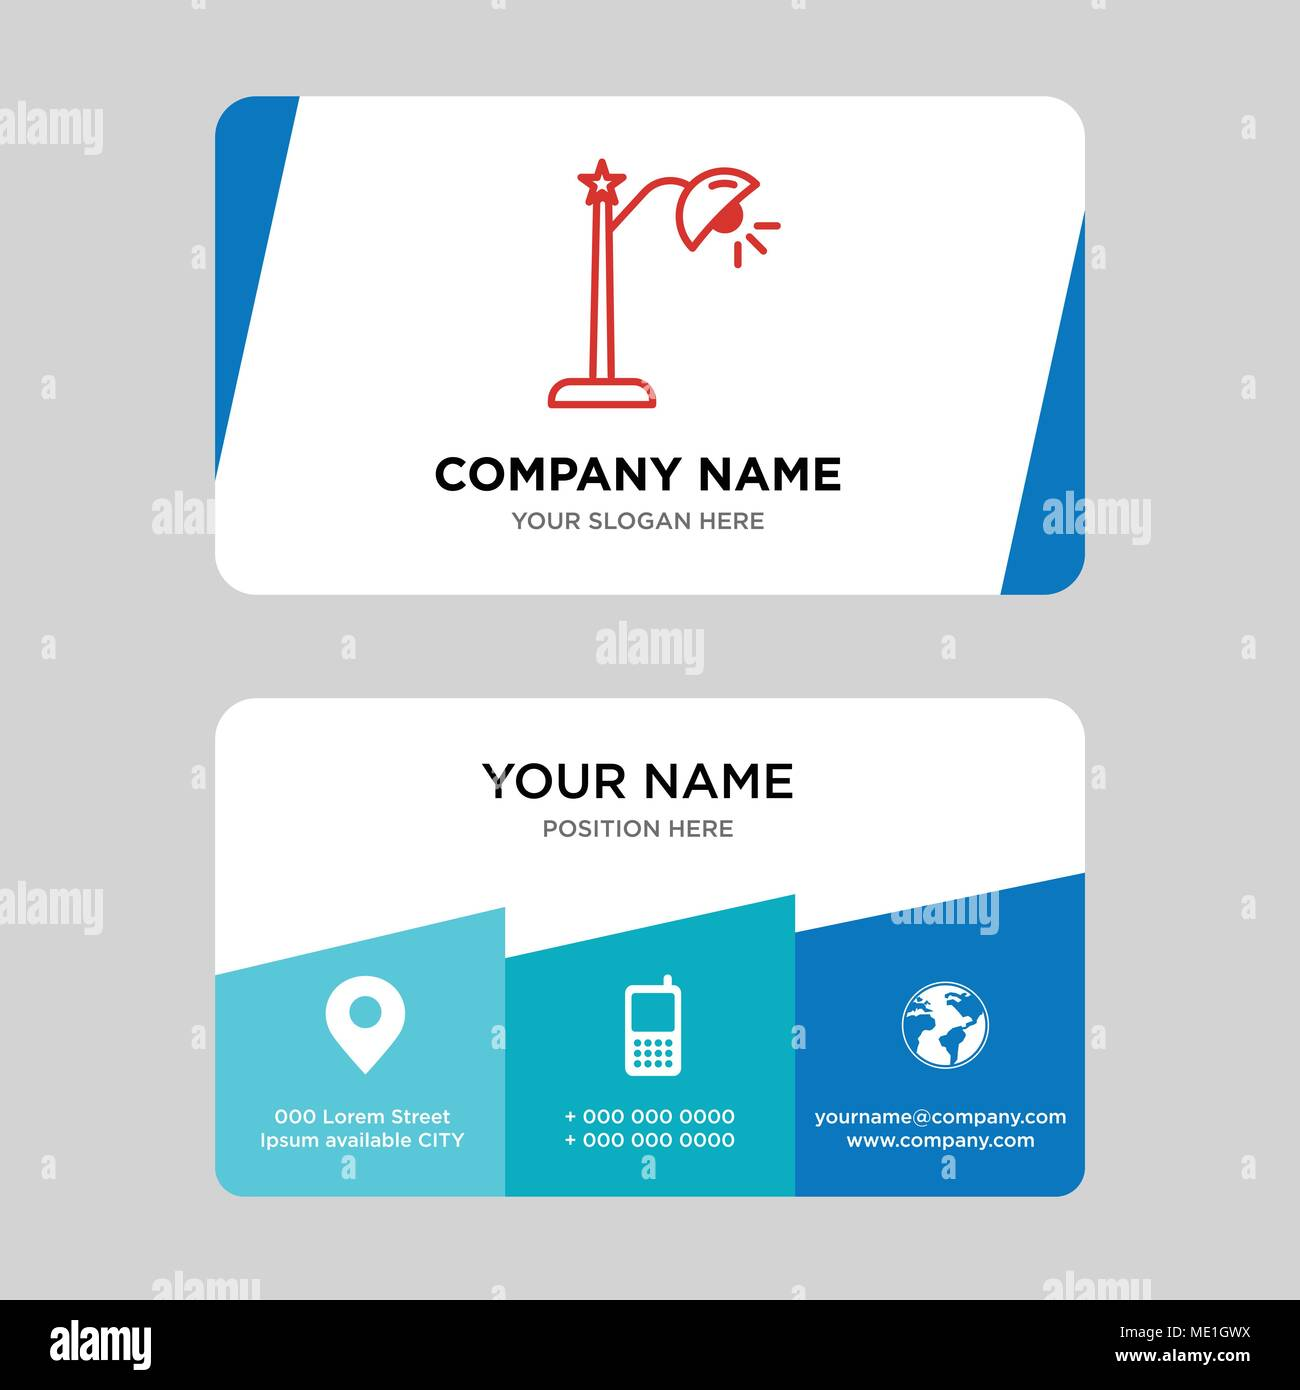 Lightbulb business card design template visiting for your company lightbulb business card design template visiting for your company modern creative and clean identity card vector illustration reheart Image collections